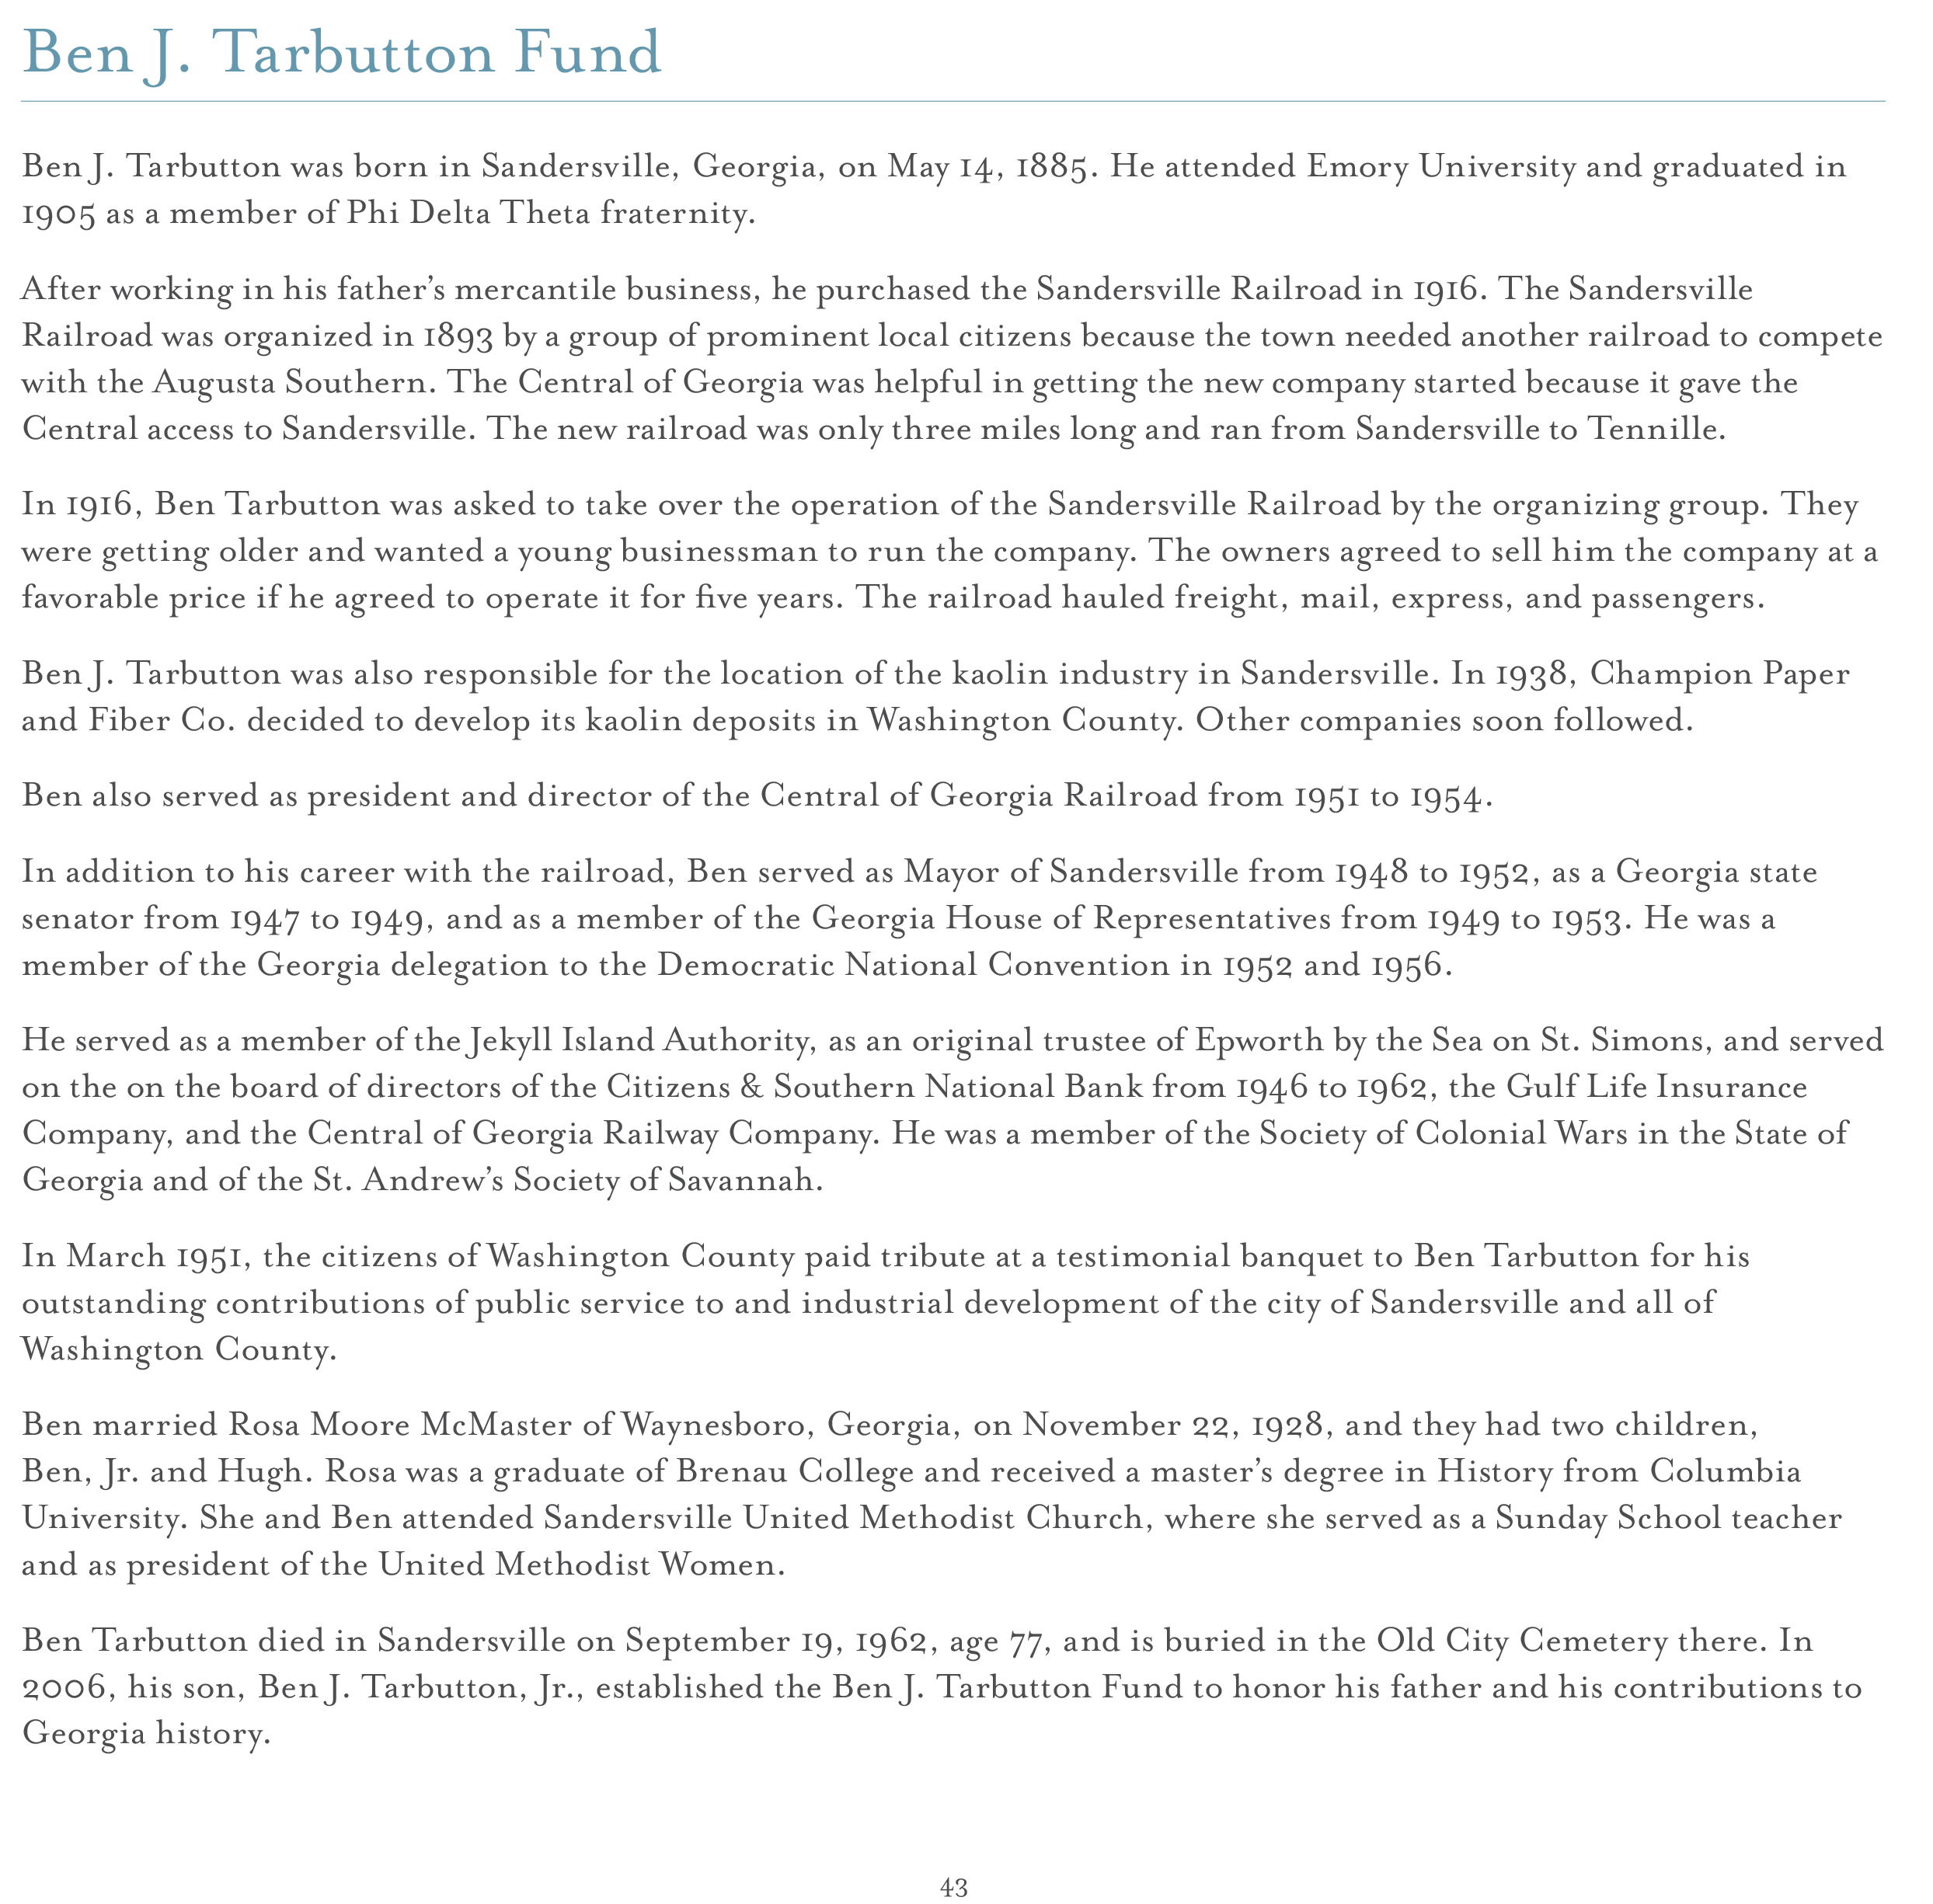 endowment campaign historical society ben j tarbutton fund